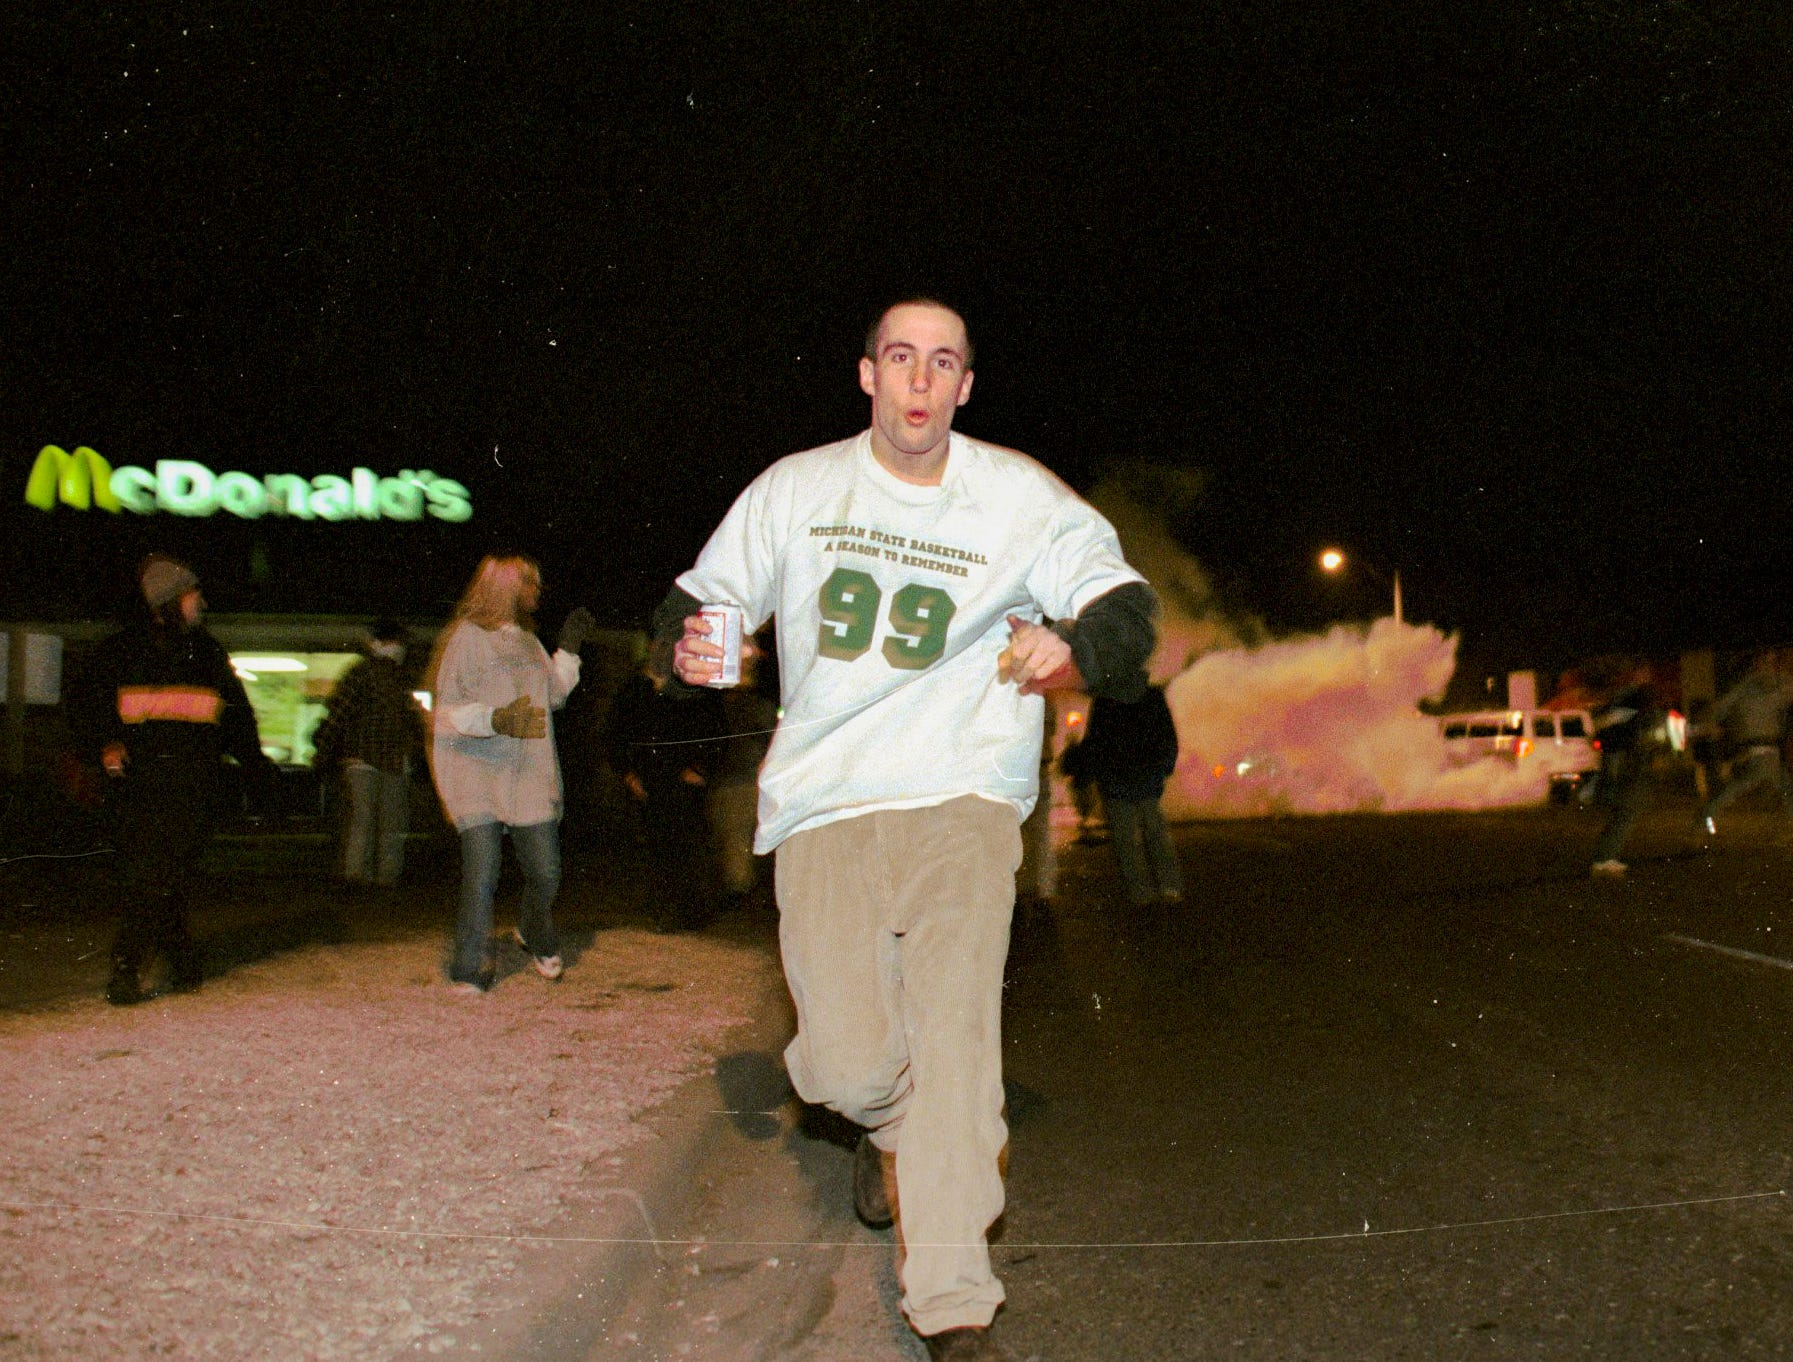 A young man runs carrying a beer after tear gas was fired into a crowd on Saturday, March 27, 1999, in East Lansing.